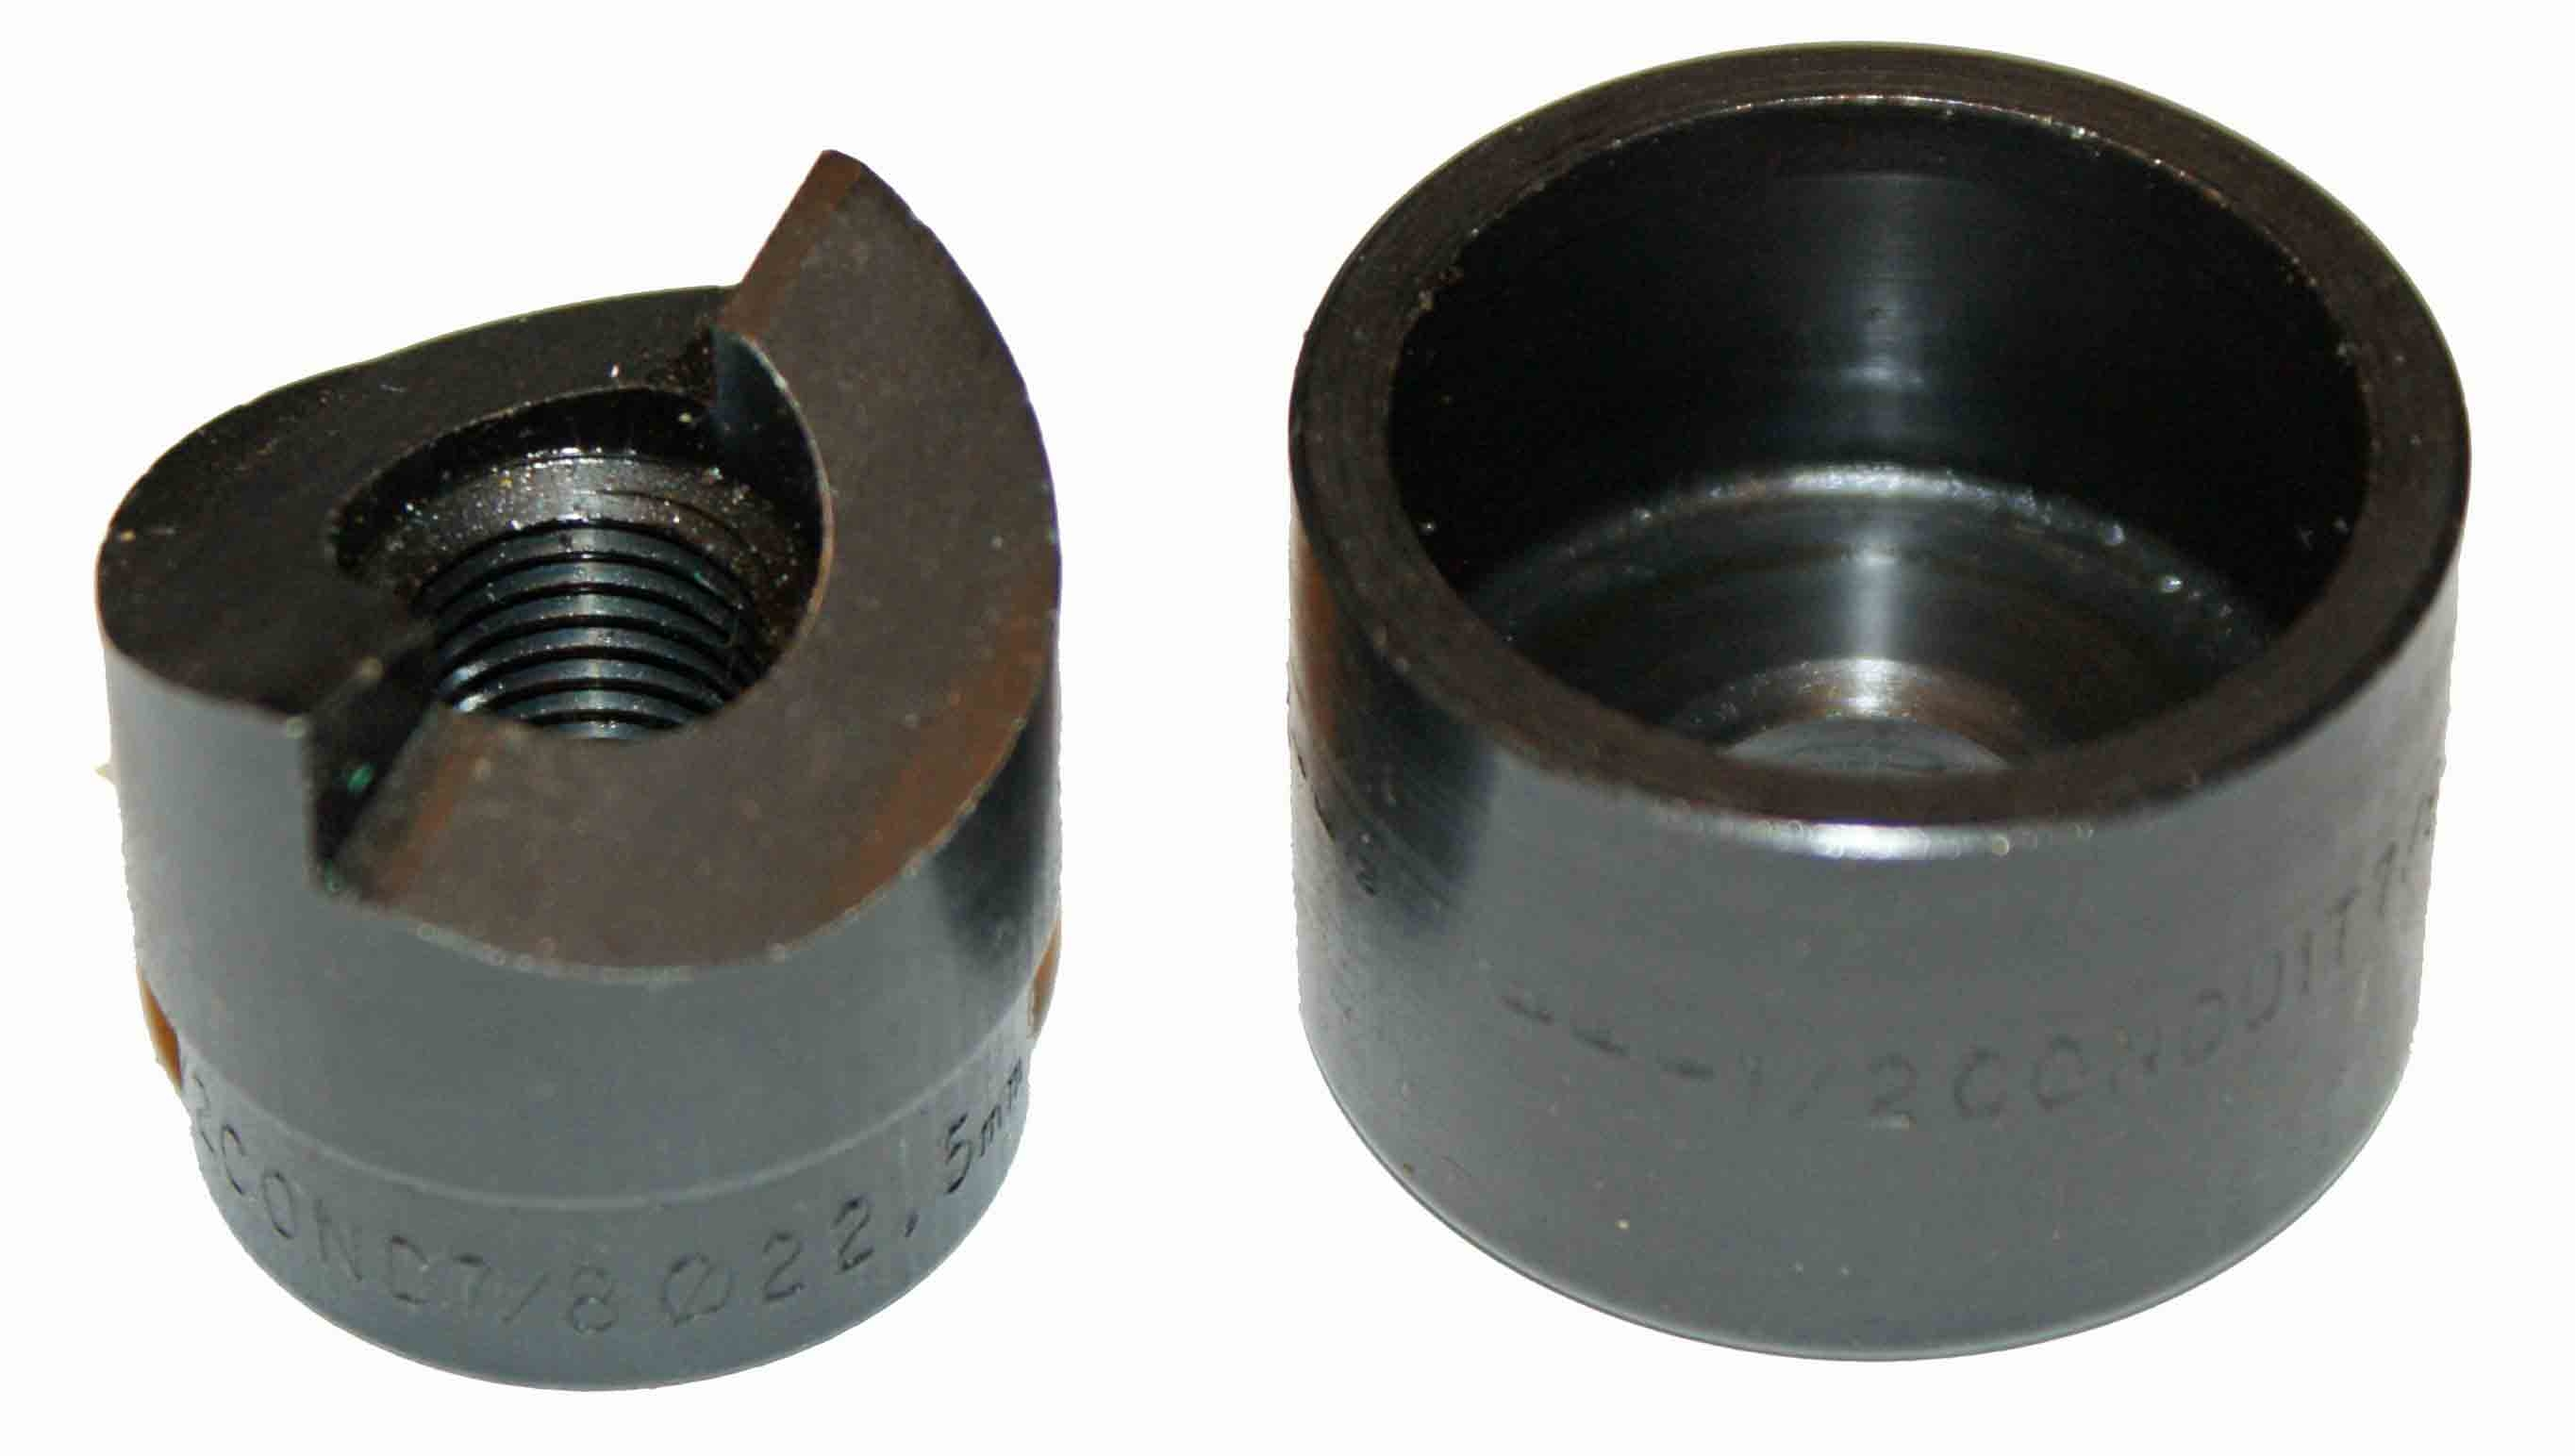 Greenlee 721-1/2 Conduit Size Punch - Die